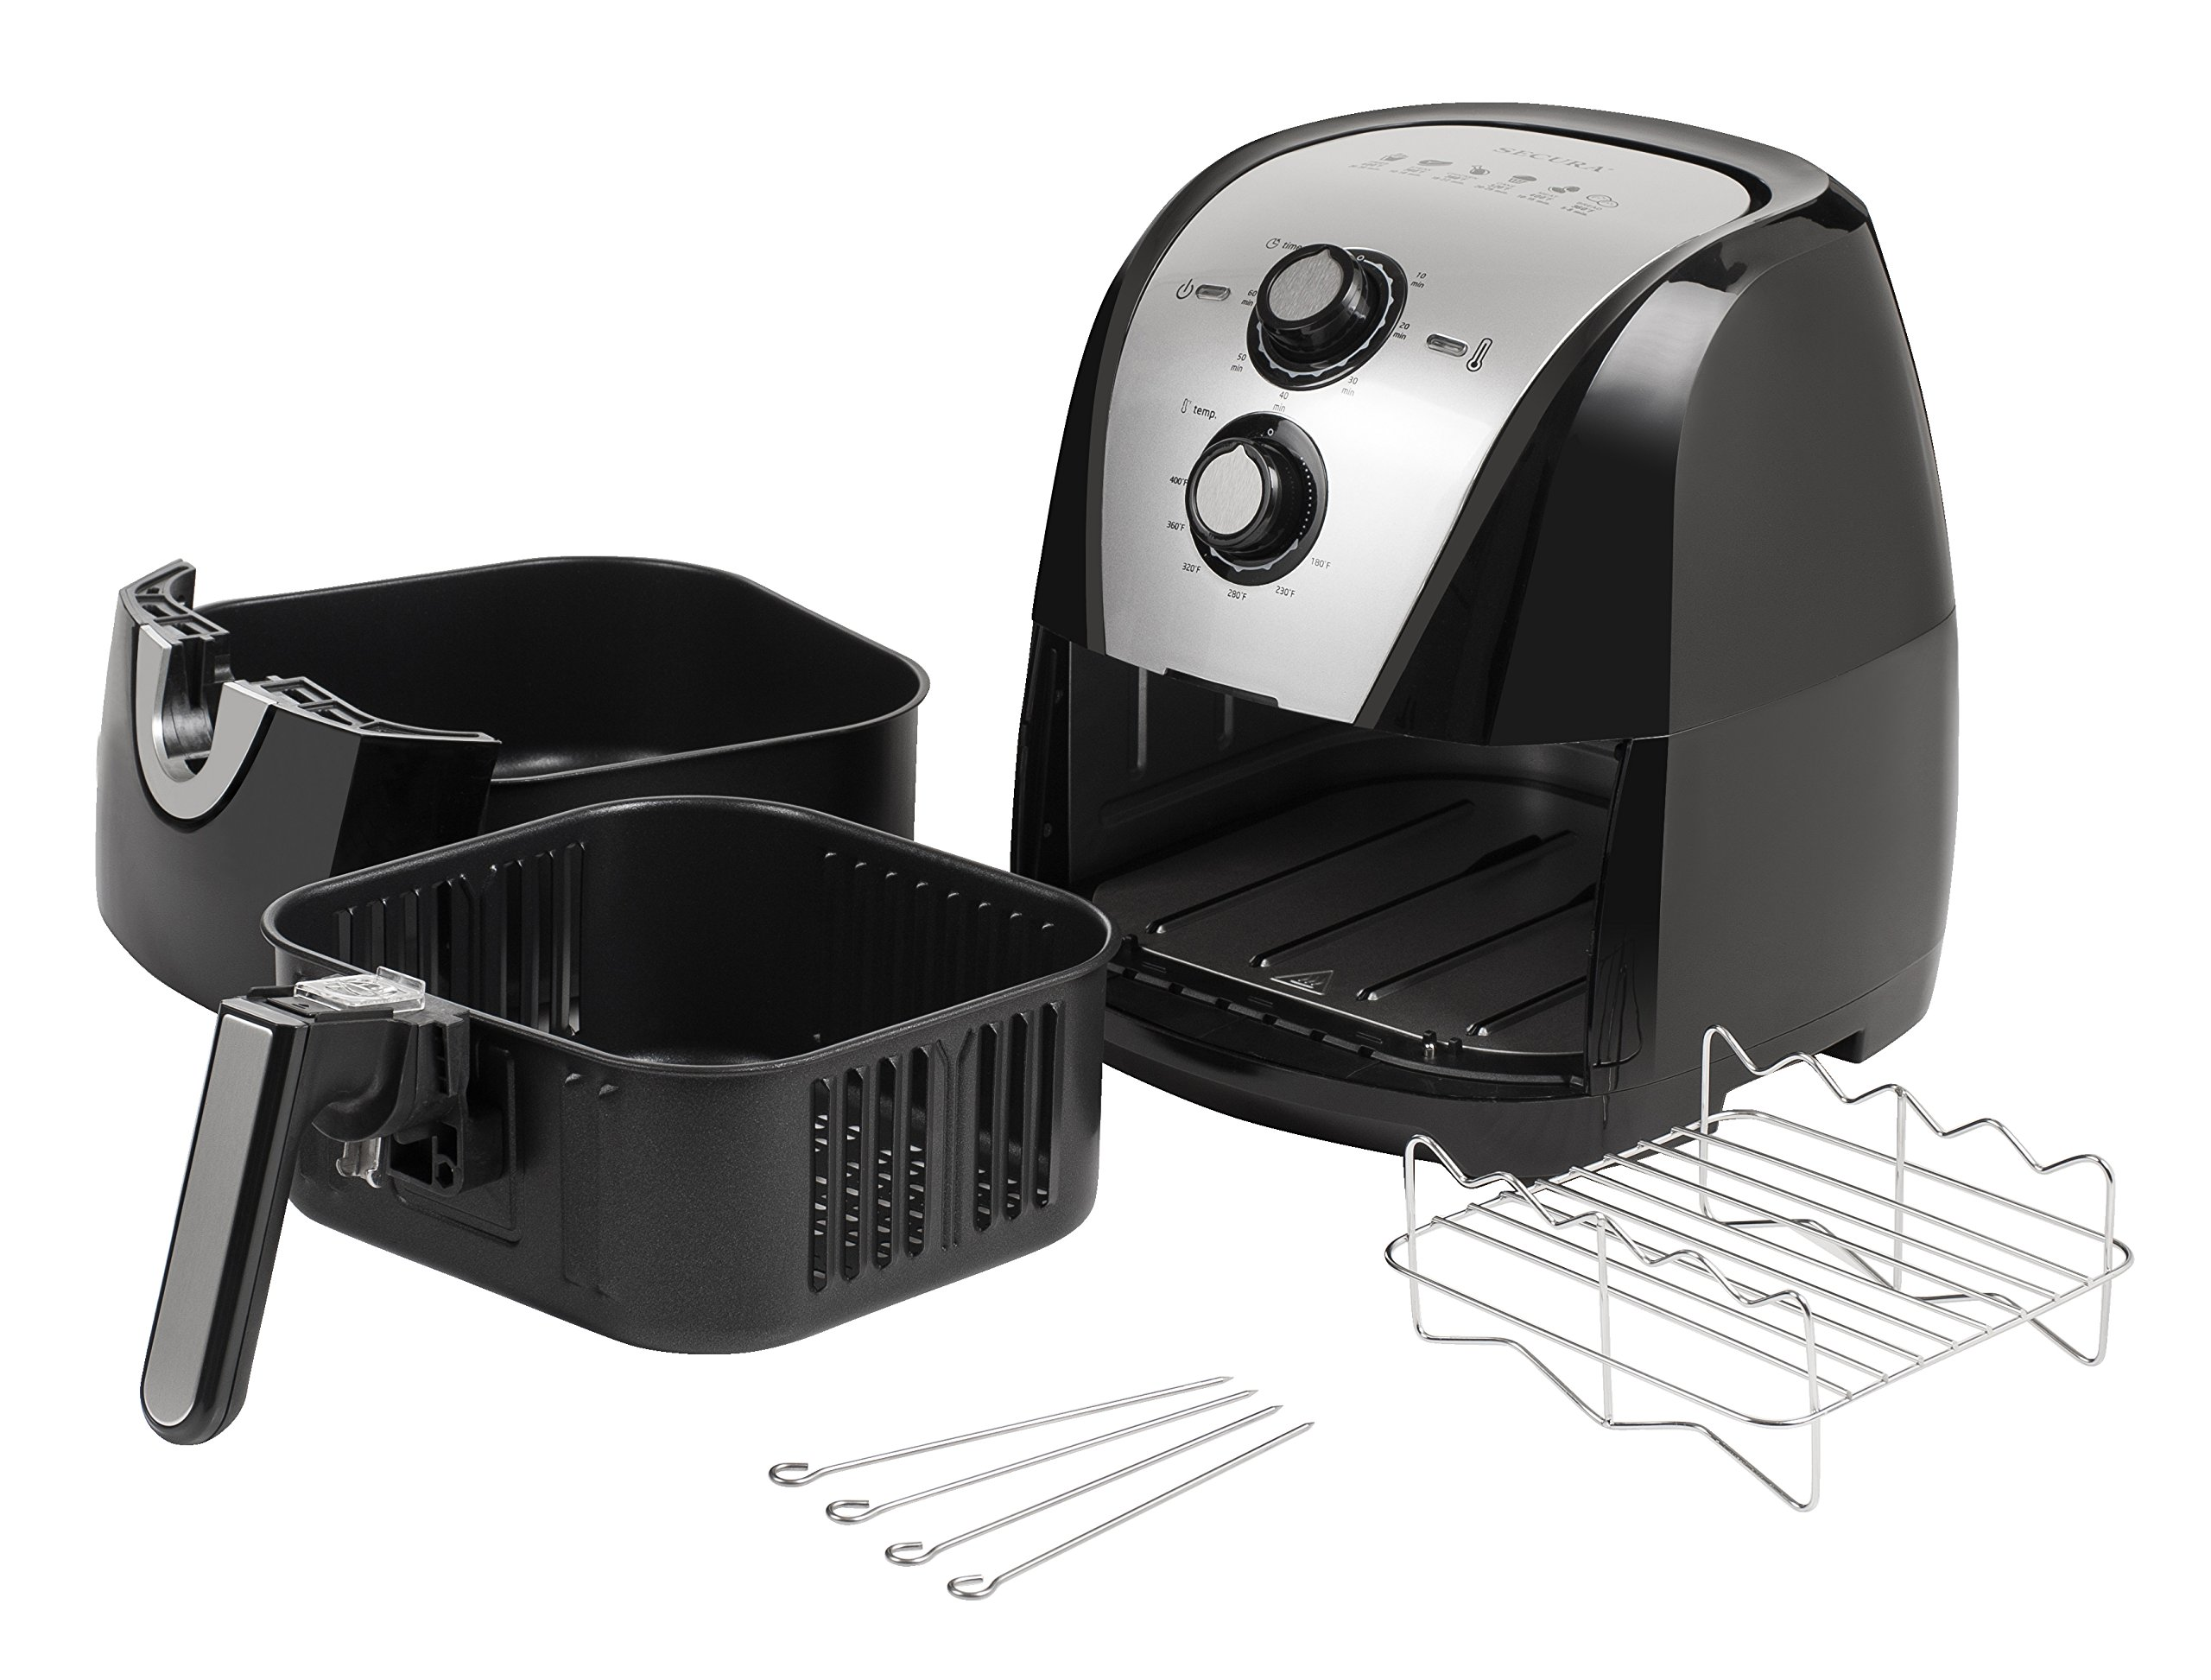 Secura Electric Hot Air Fryer Extra Large Capacity Air Fryer and additional accessories; Recipes and skewers accessory set (5.3Qt) by Secura (Image #4)